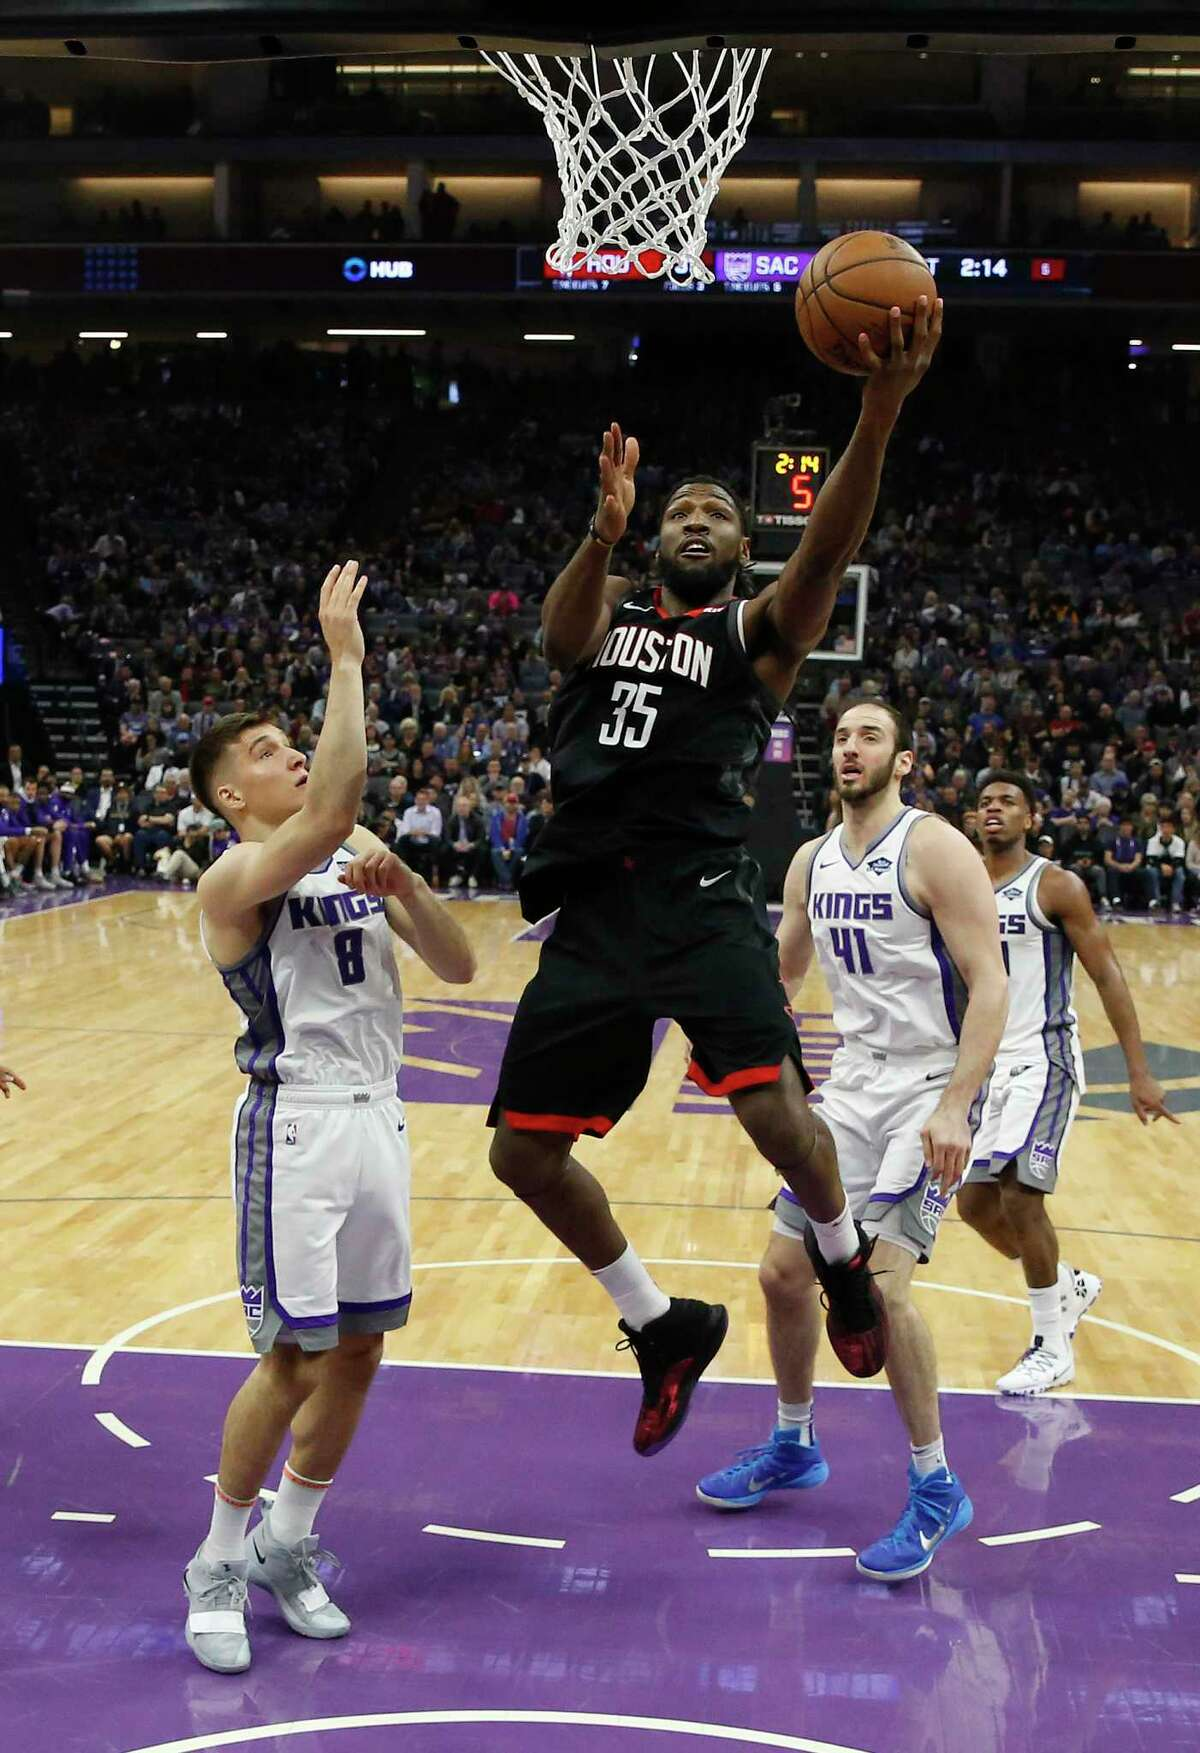 Houston Rockets forward Kenneth Faried, center, goes to the basket against Sacramento Kings guard Bogdan Bogdanovic, left, as Kings center Kosta Koufos, third from left, looks on during the first quarter of an NBA basketball game, Tuesday, April 2, 2019, in Sacramento, Calif.(AP Photo/Rich Pedroncelli)